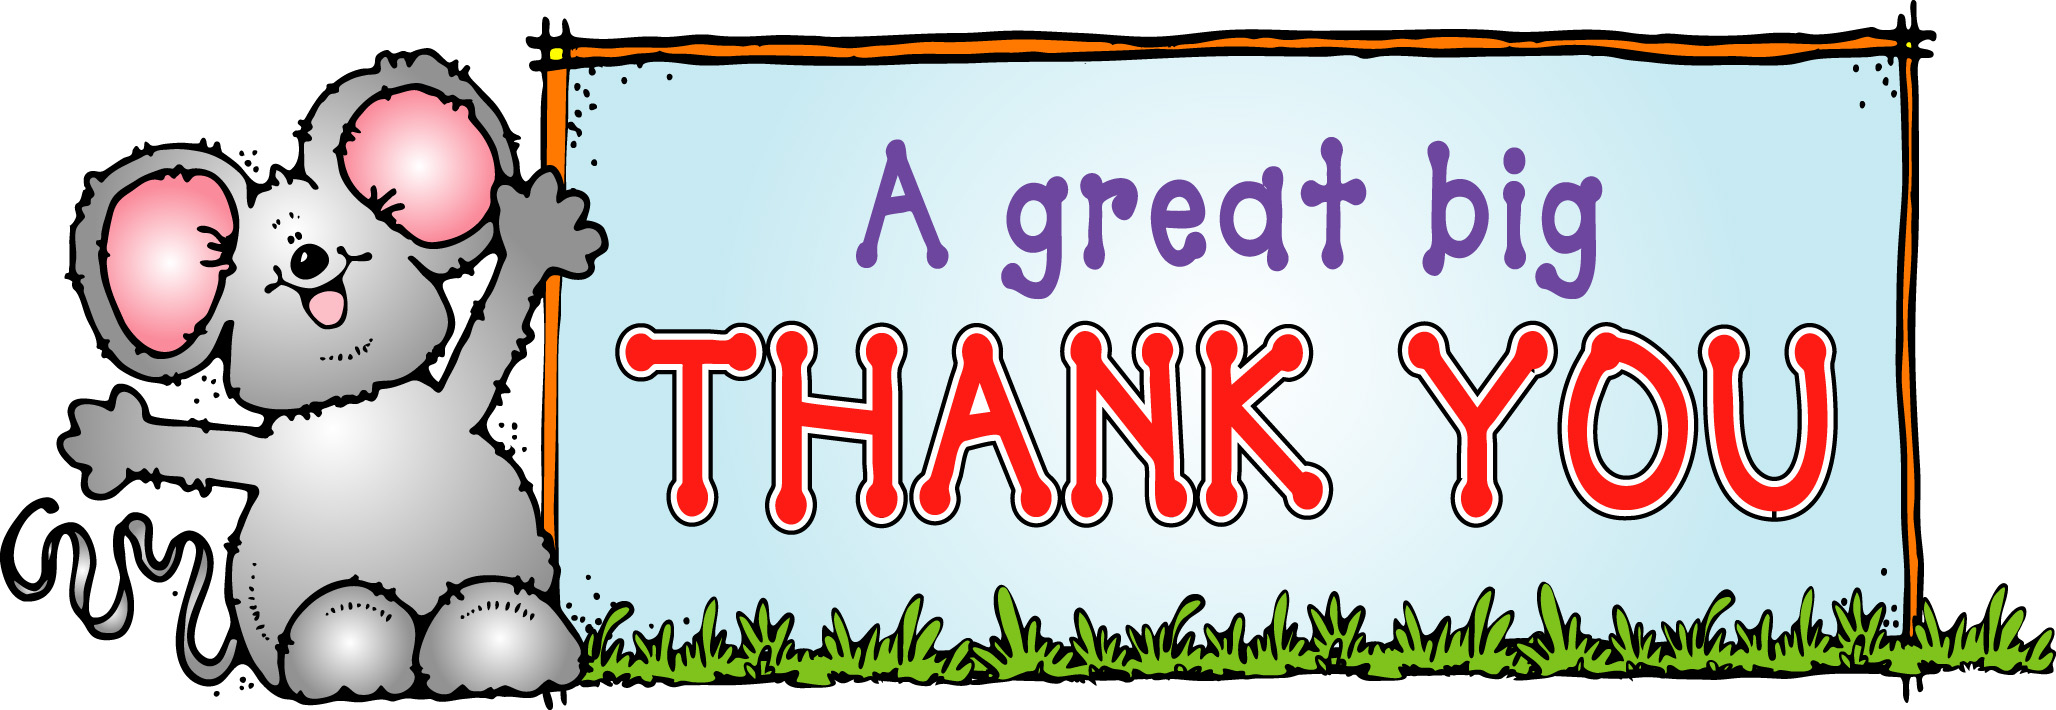 Thanks clipart much. Donation free download best